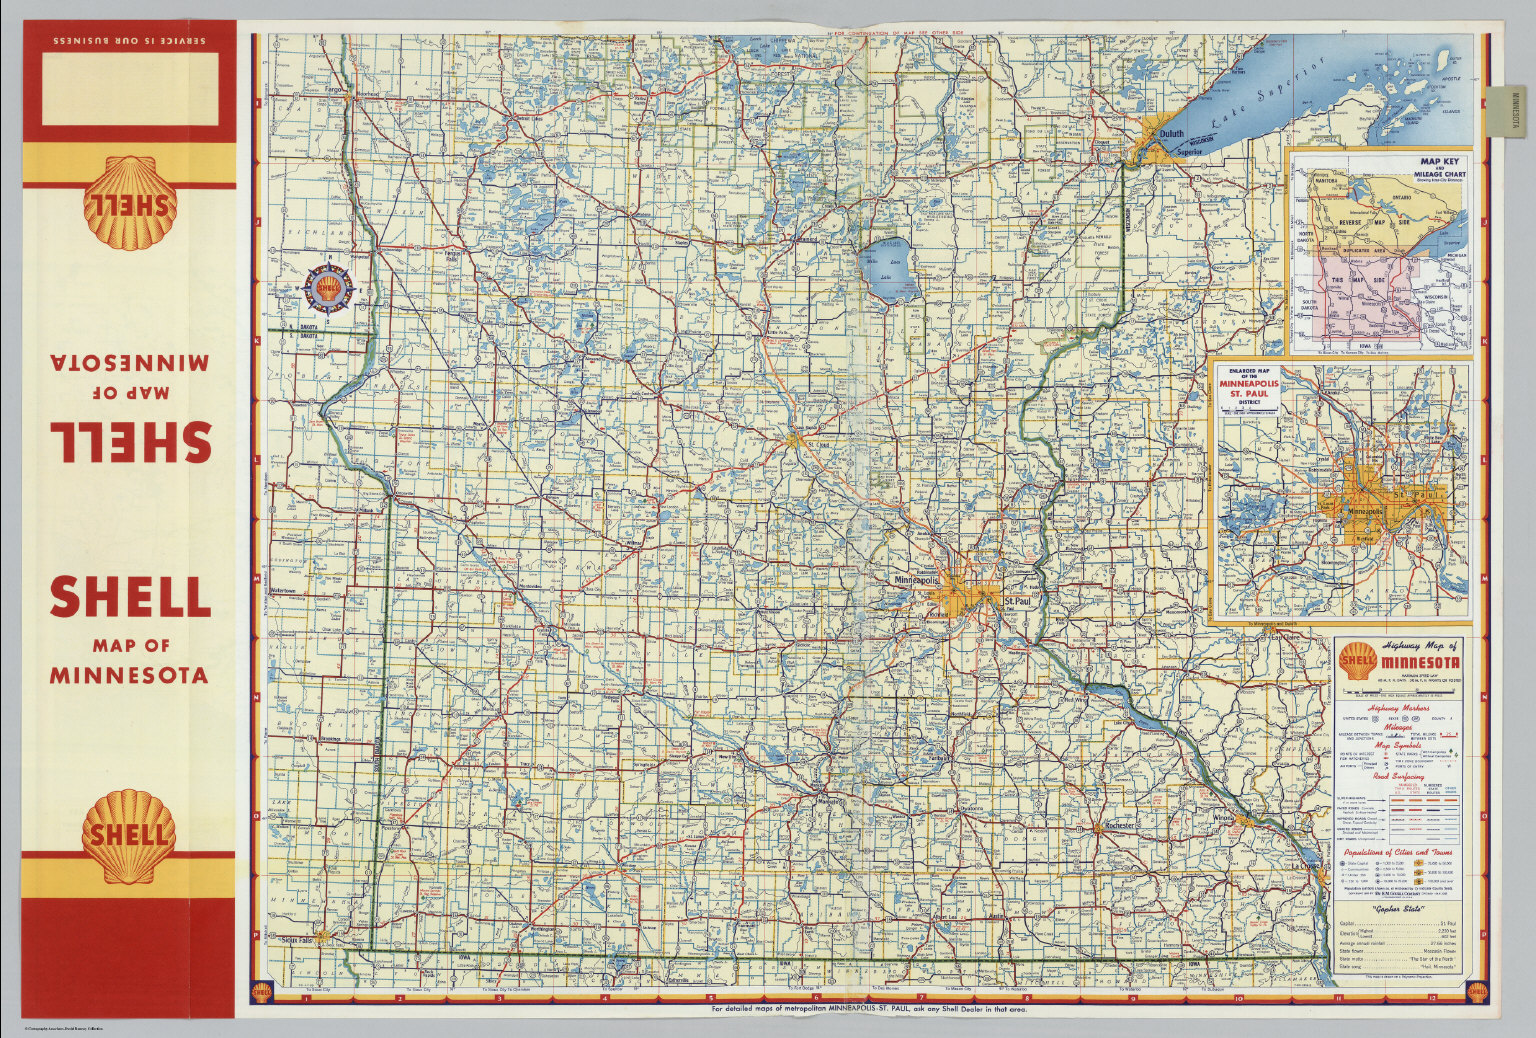 Shell Highway Map Of Minnesota Northern Portion David Rumsey - Minnesota highway map